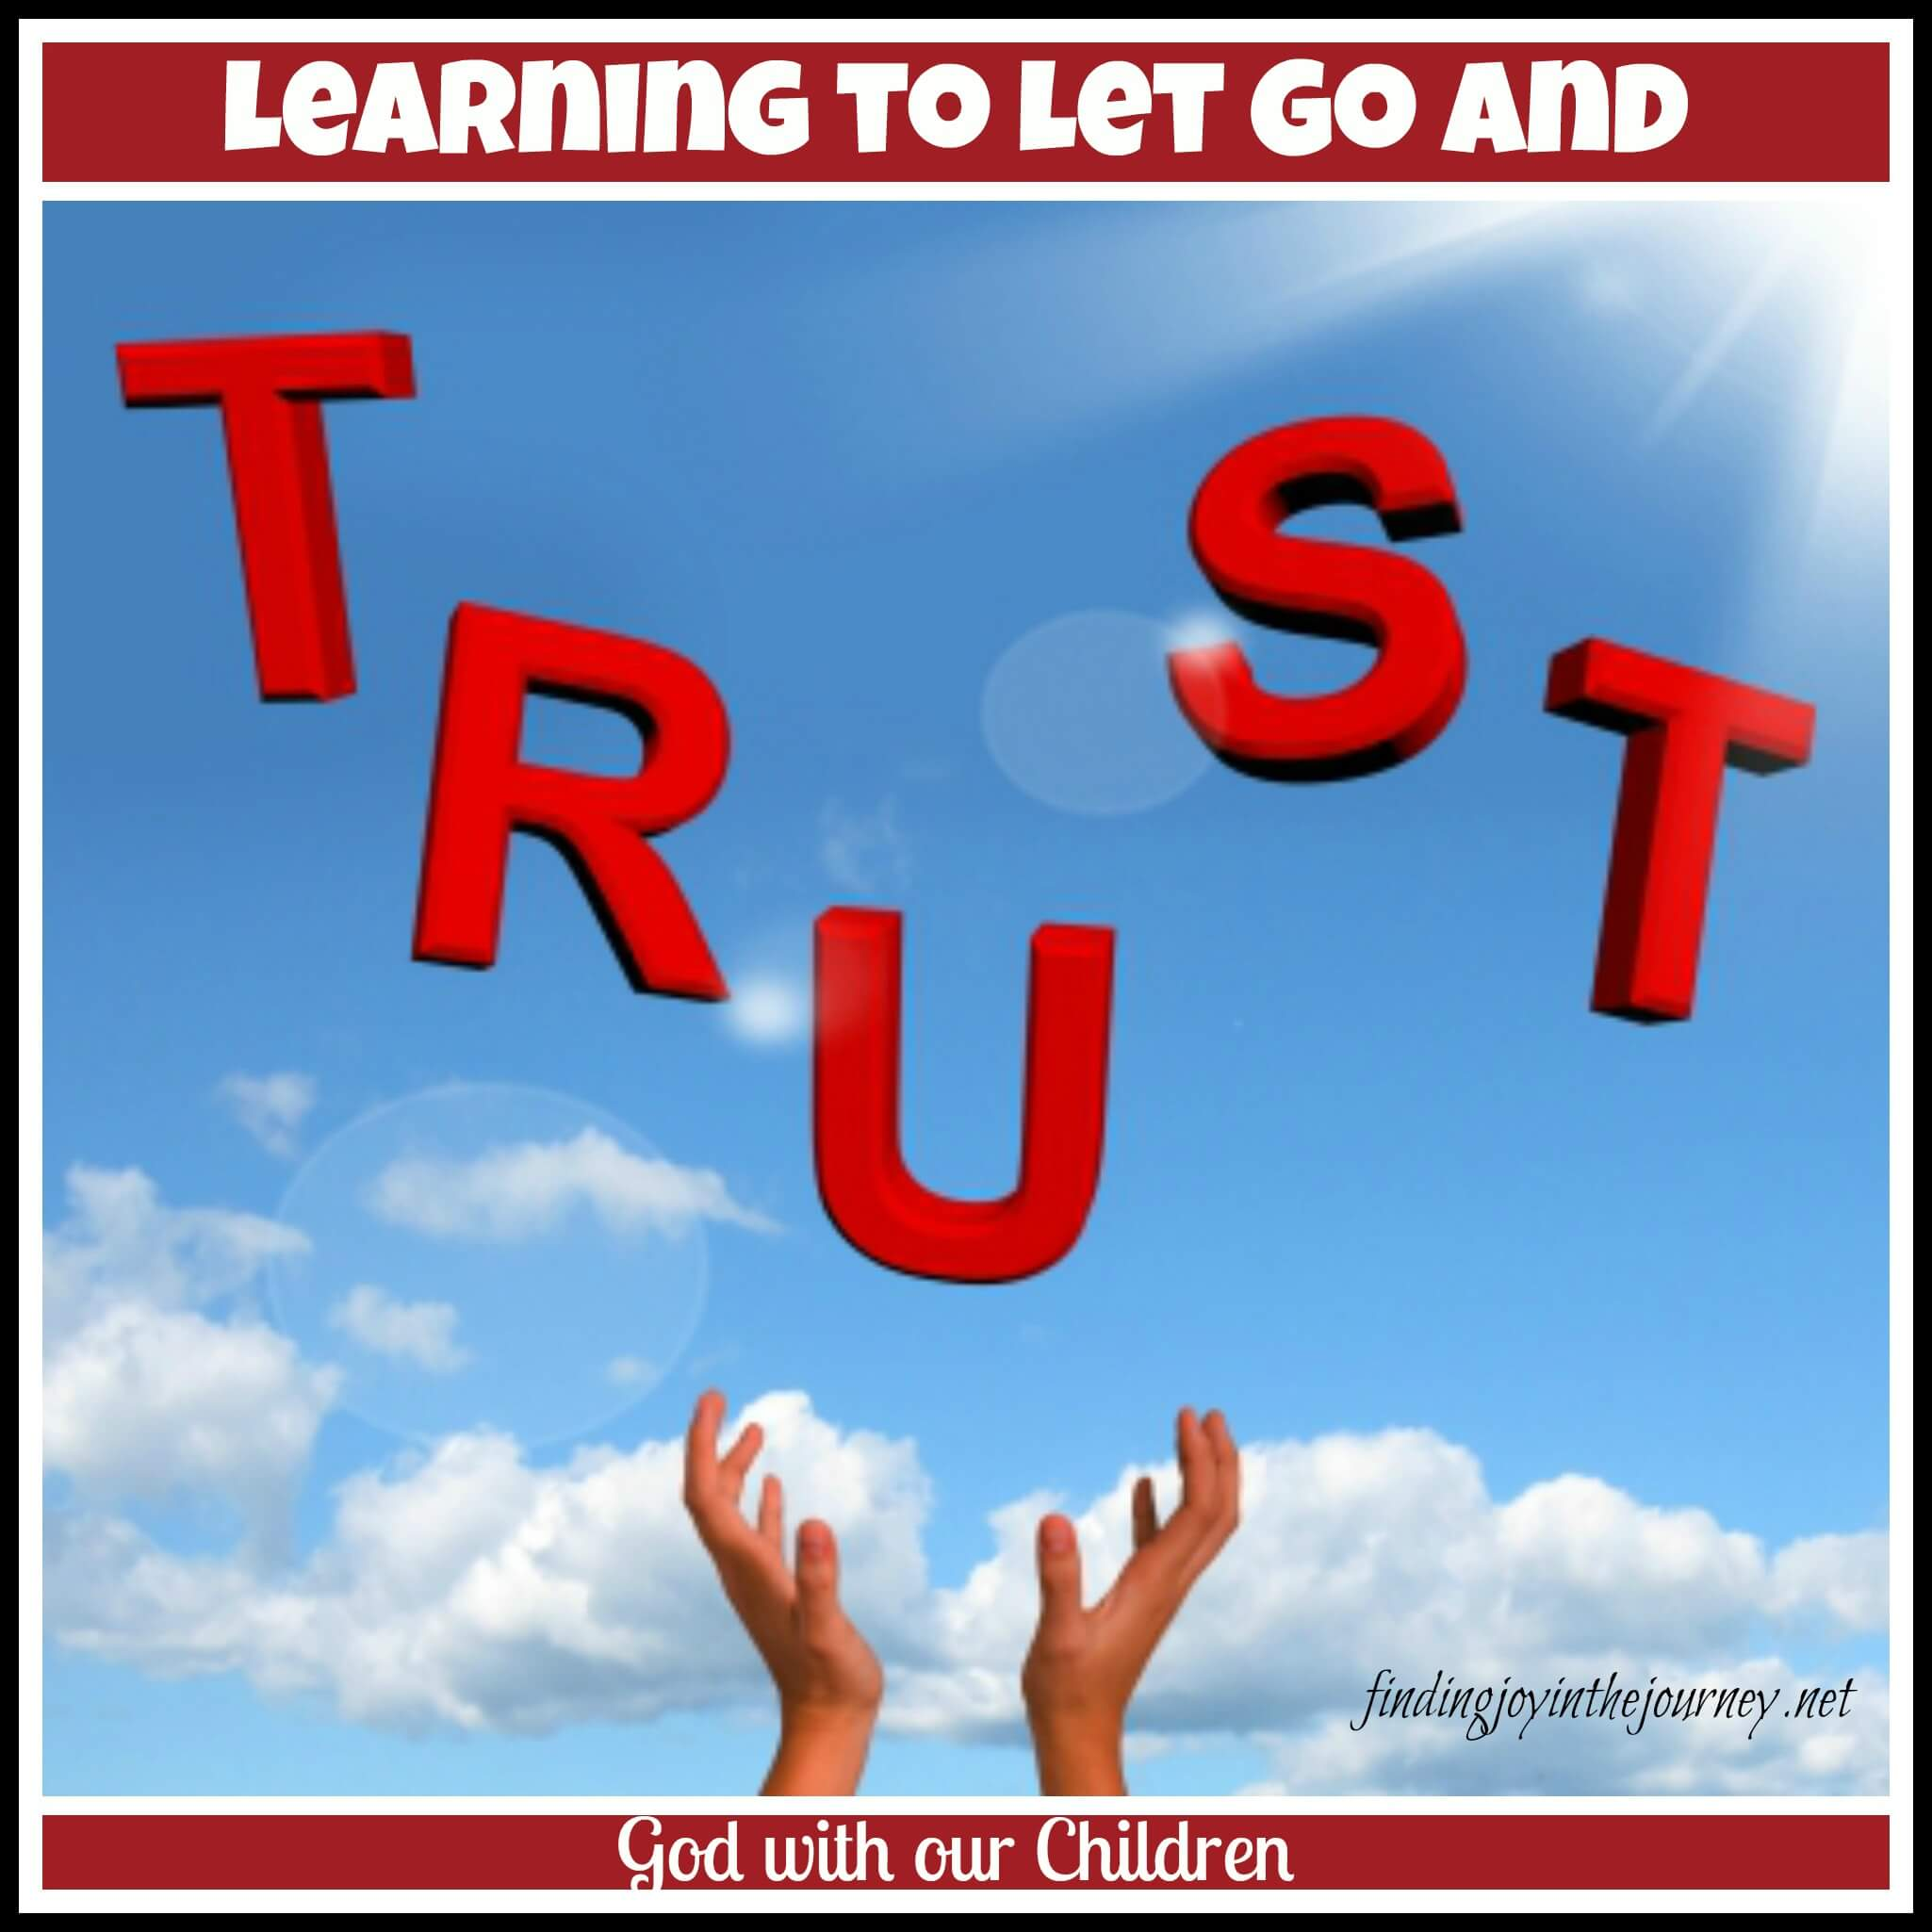 How I am Learning to Let Go, and Trust God with My Children